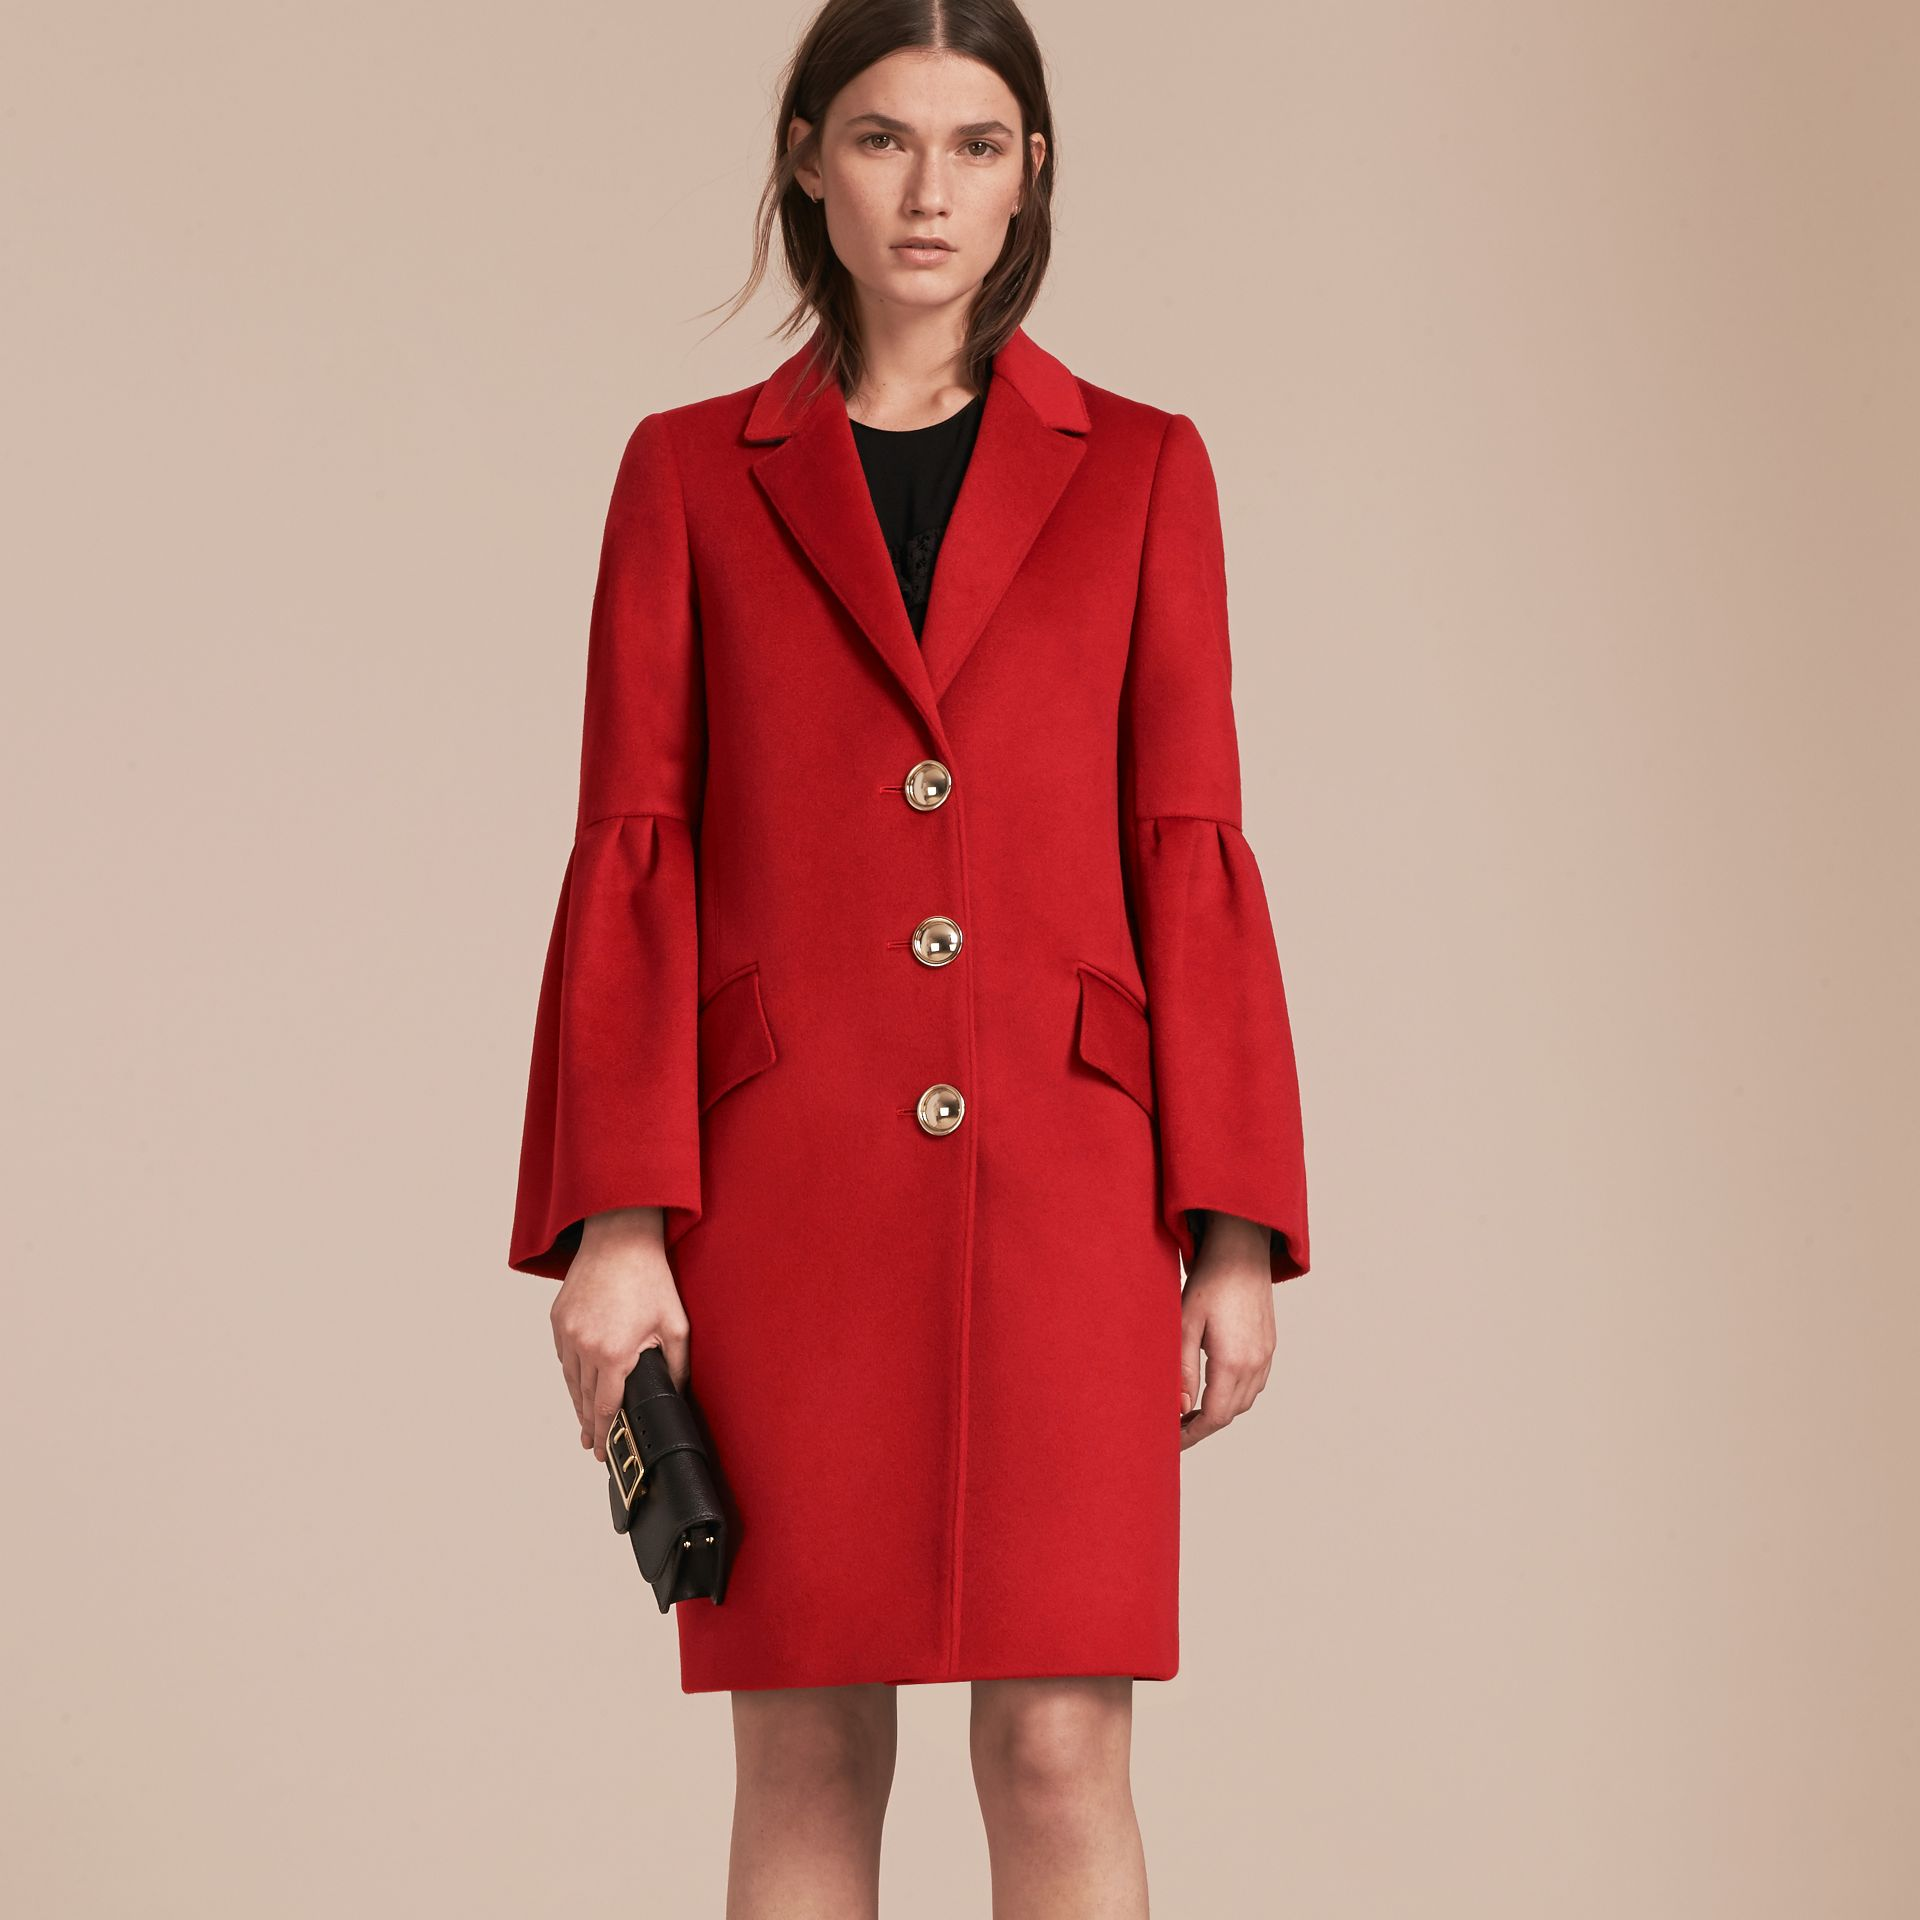 Parade red Tailored Wool Cashmere Coat with Bell Sleeves Parade - gallery image 7